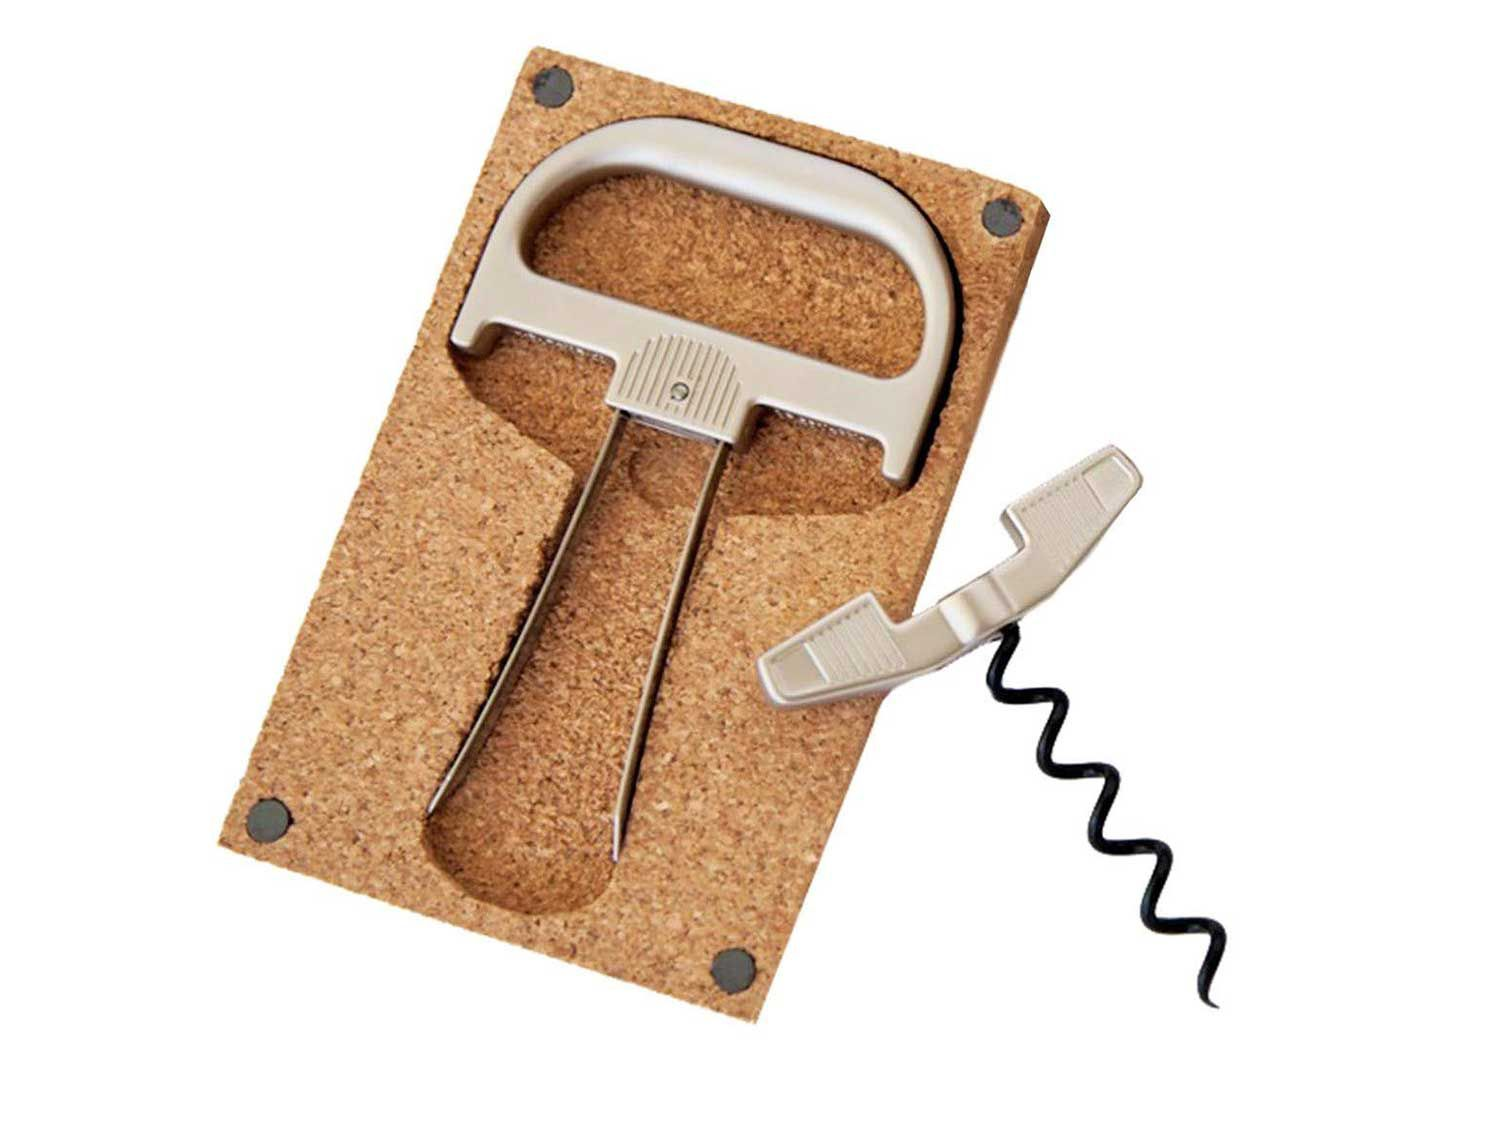 This bottle opener is best for older, more fragile corks on finely aged wines.